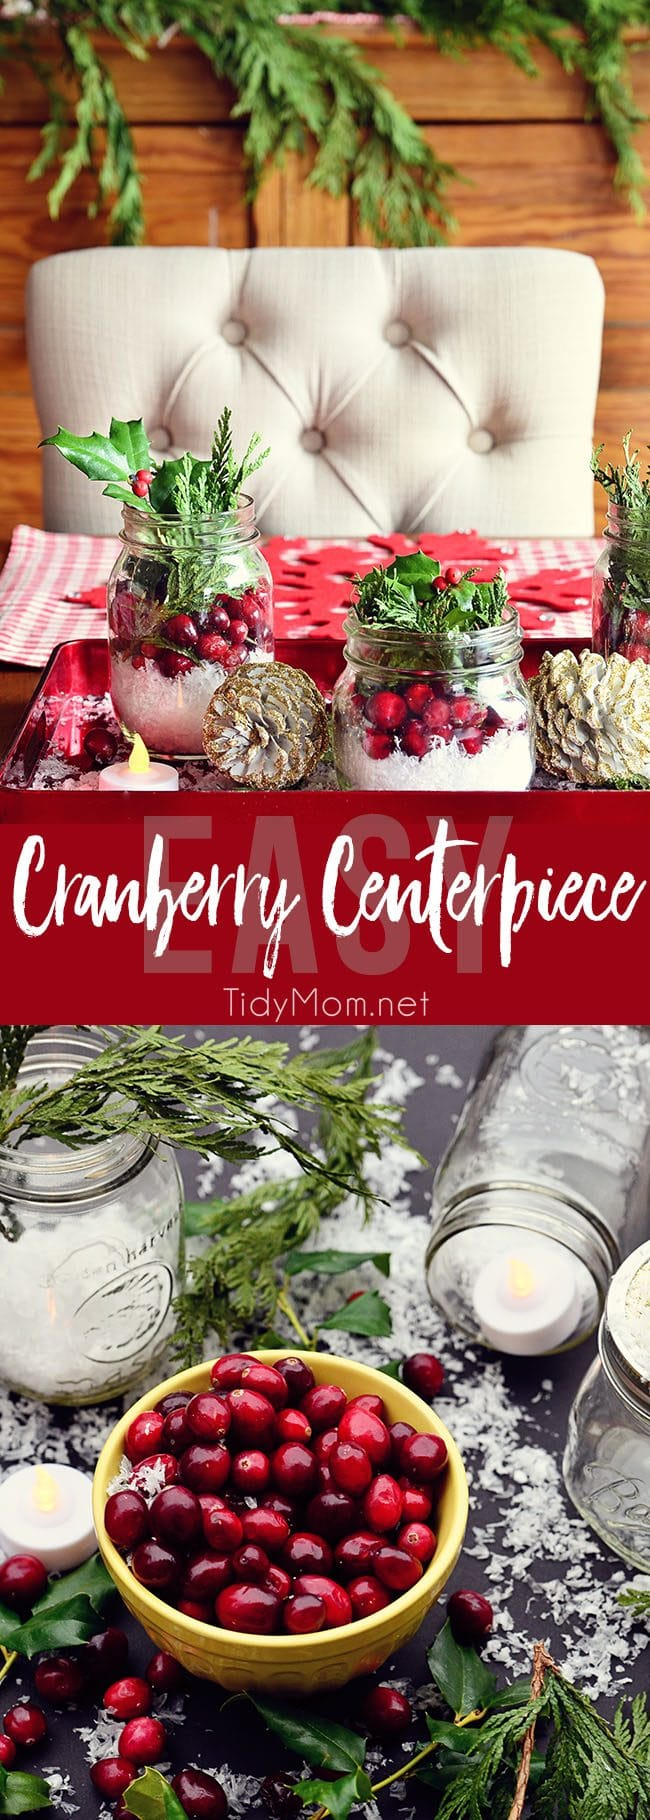 There is something magical about bringing the outside in, with this Easy Cranberry Centerpiece for the holidays. learn more at TidyMom.net